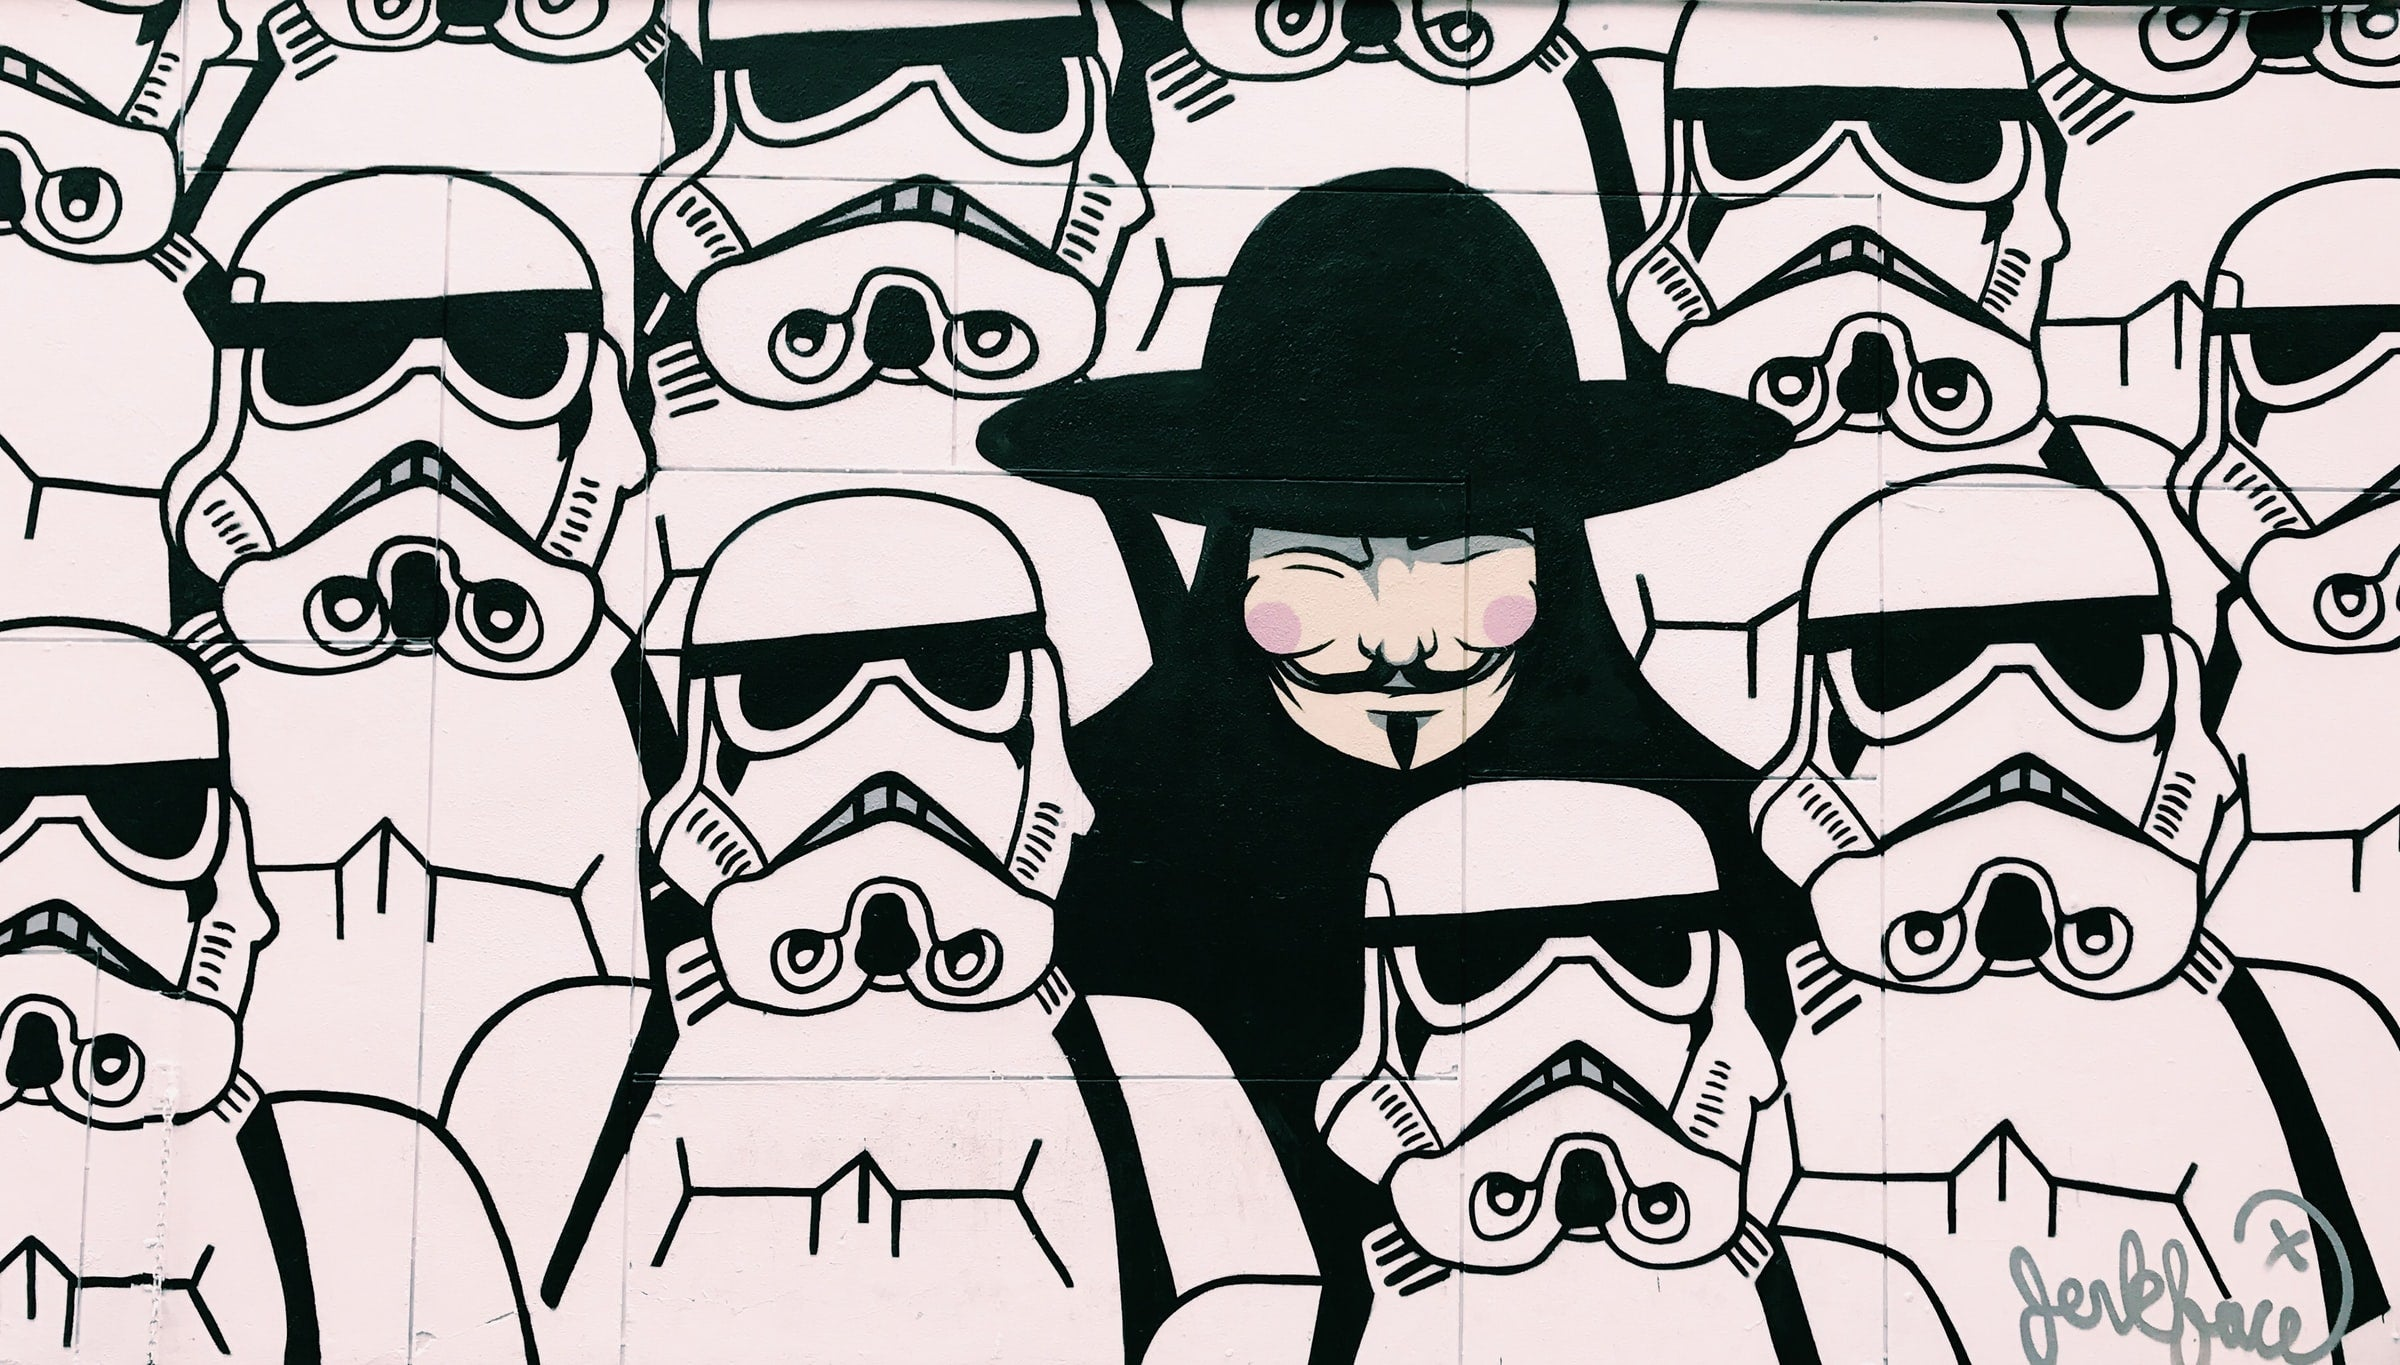 Richard Thompson Unsplash Image - Guy Fawkes standing in the middle of Storm Troopers illustration